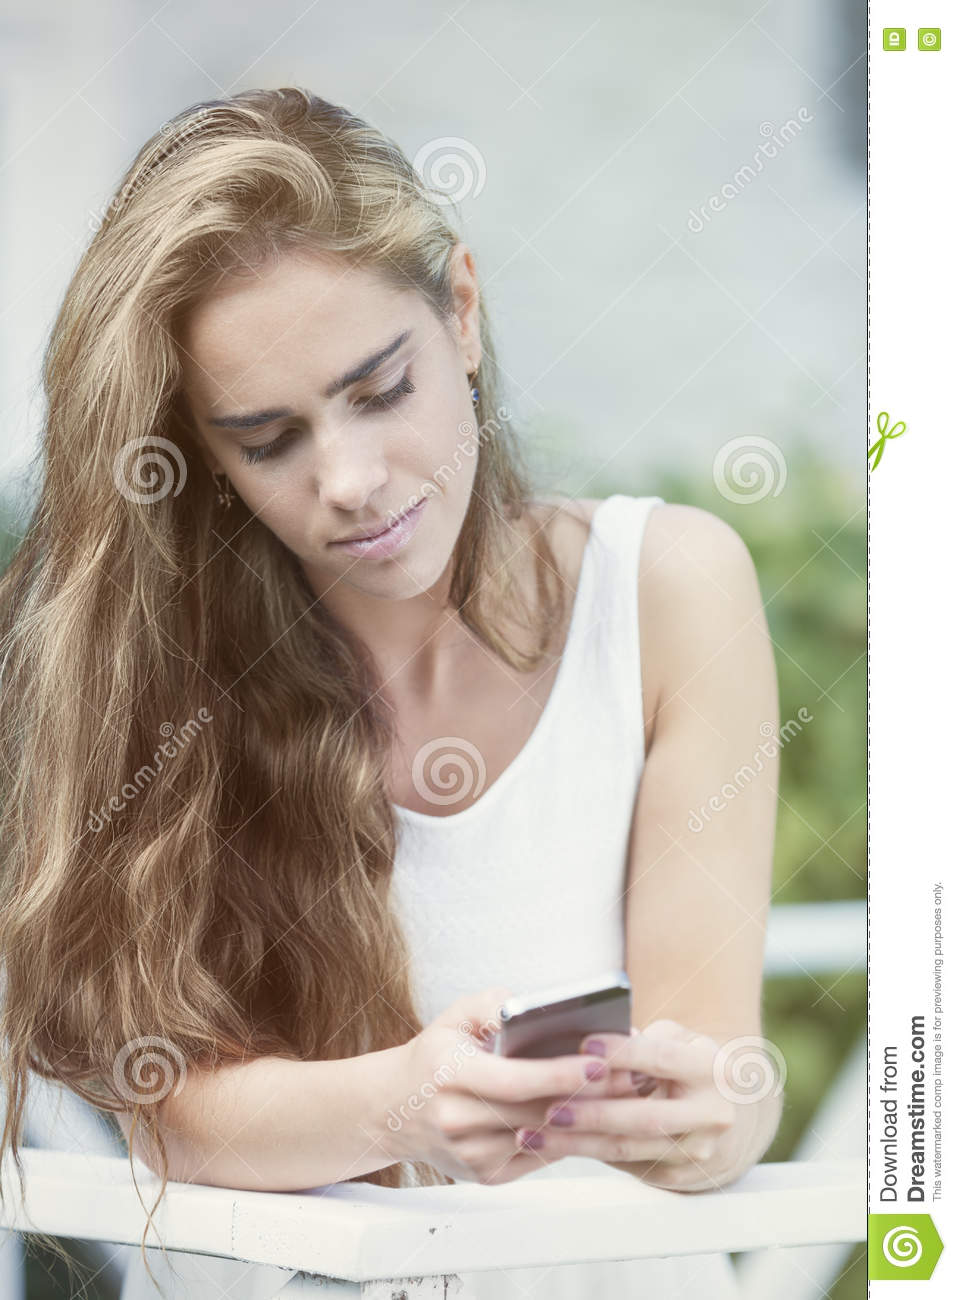 Download Sending the message stock photo. Image of lifestyle, beautiful - 77066870